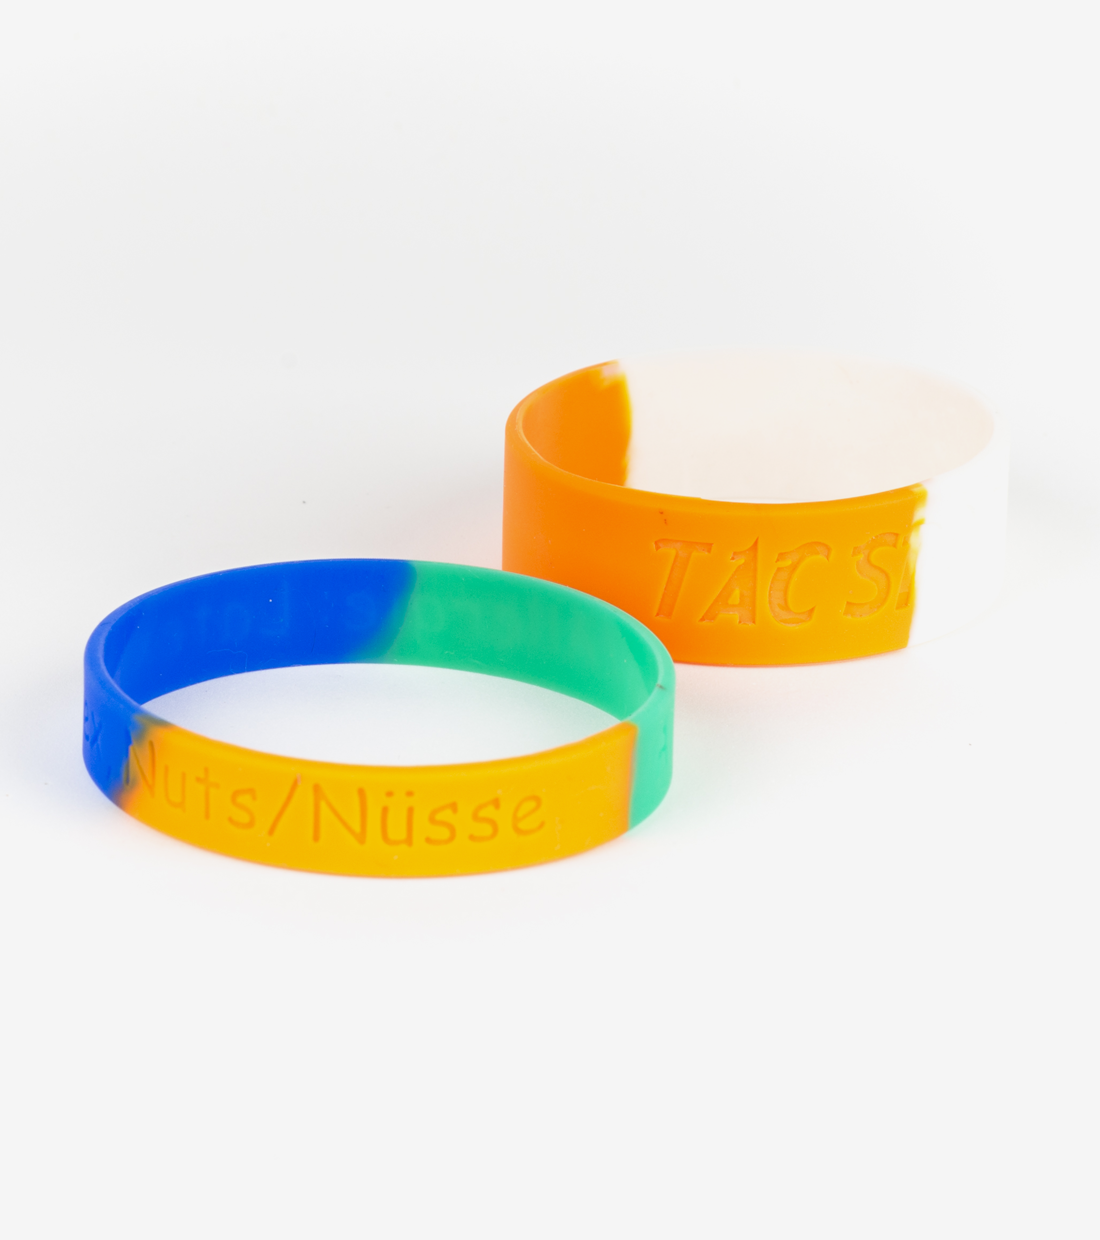 Debossed and Segmented Silicone Wristbands